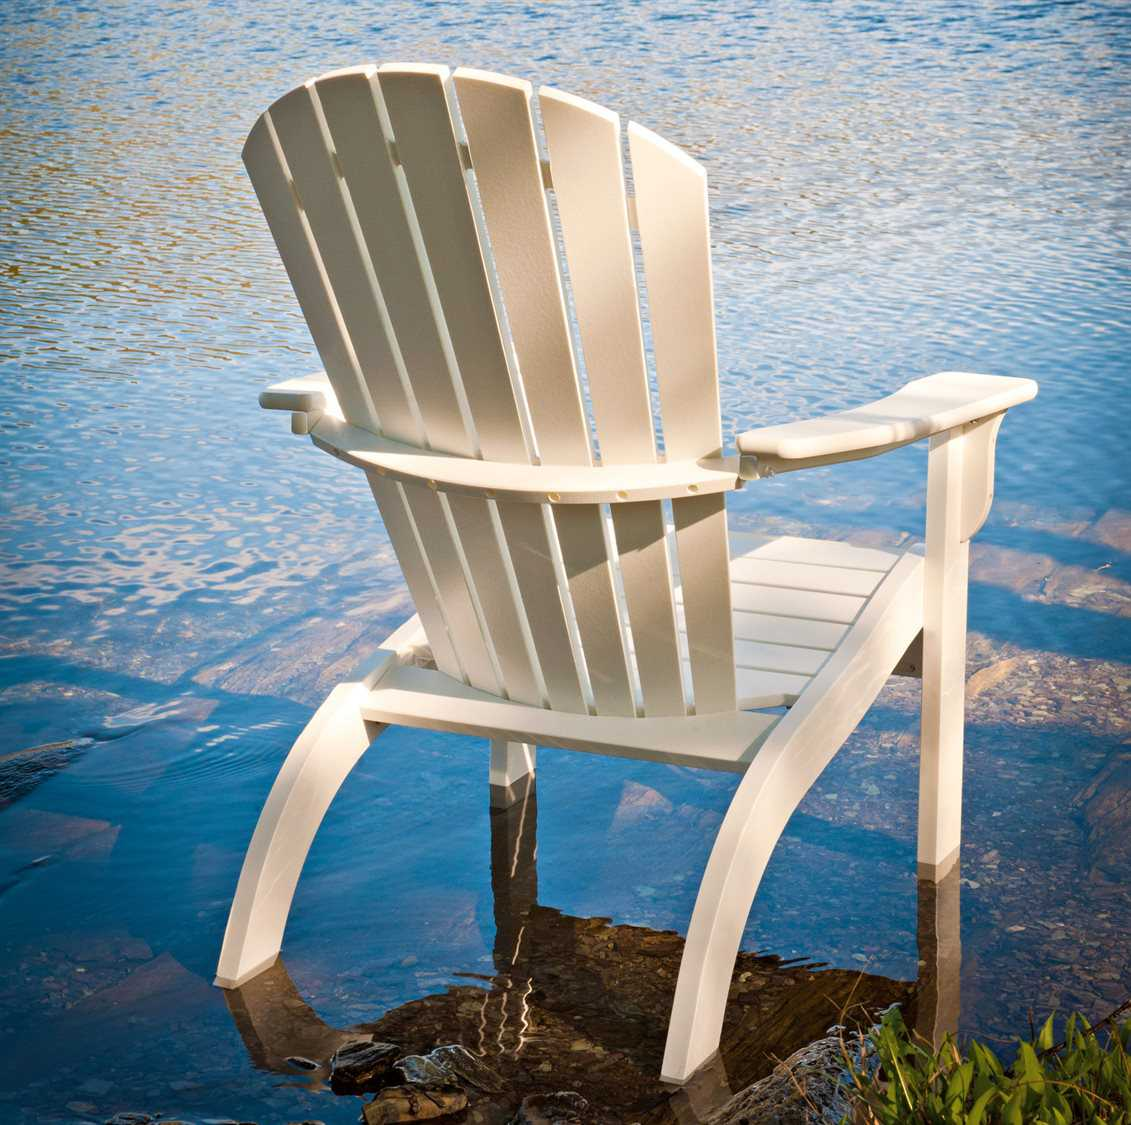 Telescope Casual Adirondack MGP Recycled Plastic Lounge Chair  8A10